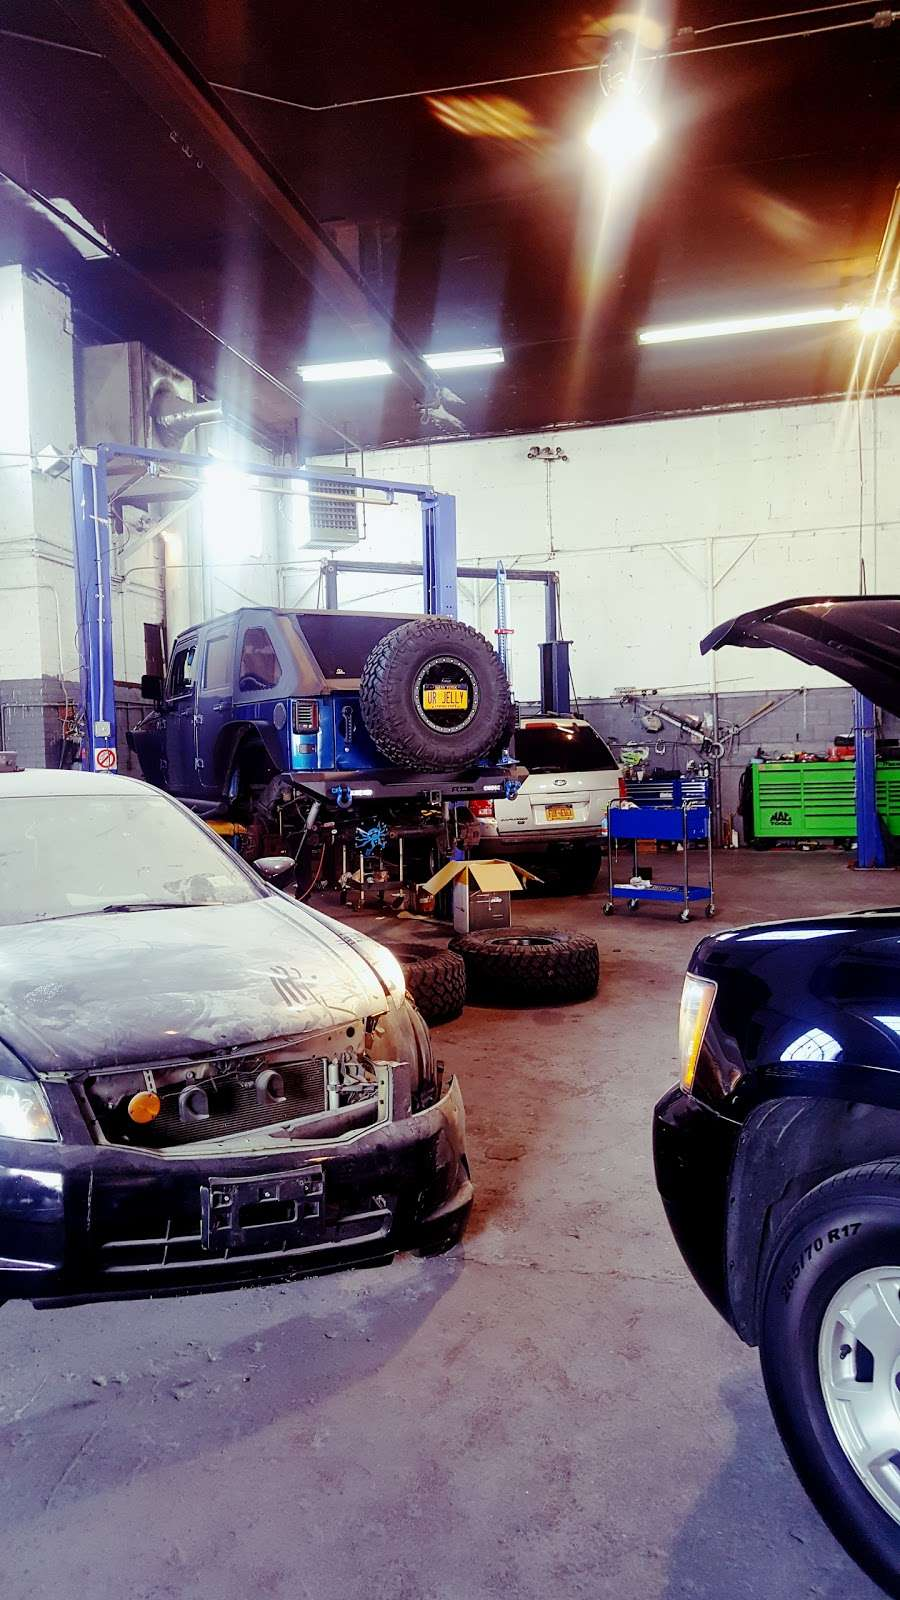 Jose Ordonez Auto Repair and Body Shop - car repair  | Photo 9 of 10 | Address: 88-43 76th Ave, Glendale, NY 11385, USA | Phone: (718) 896-0900